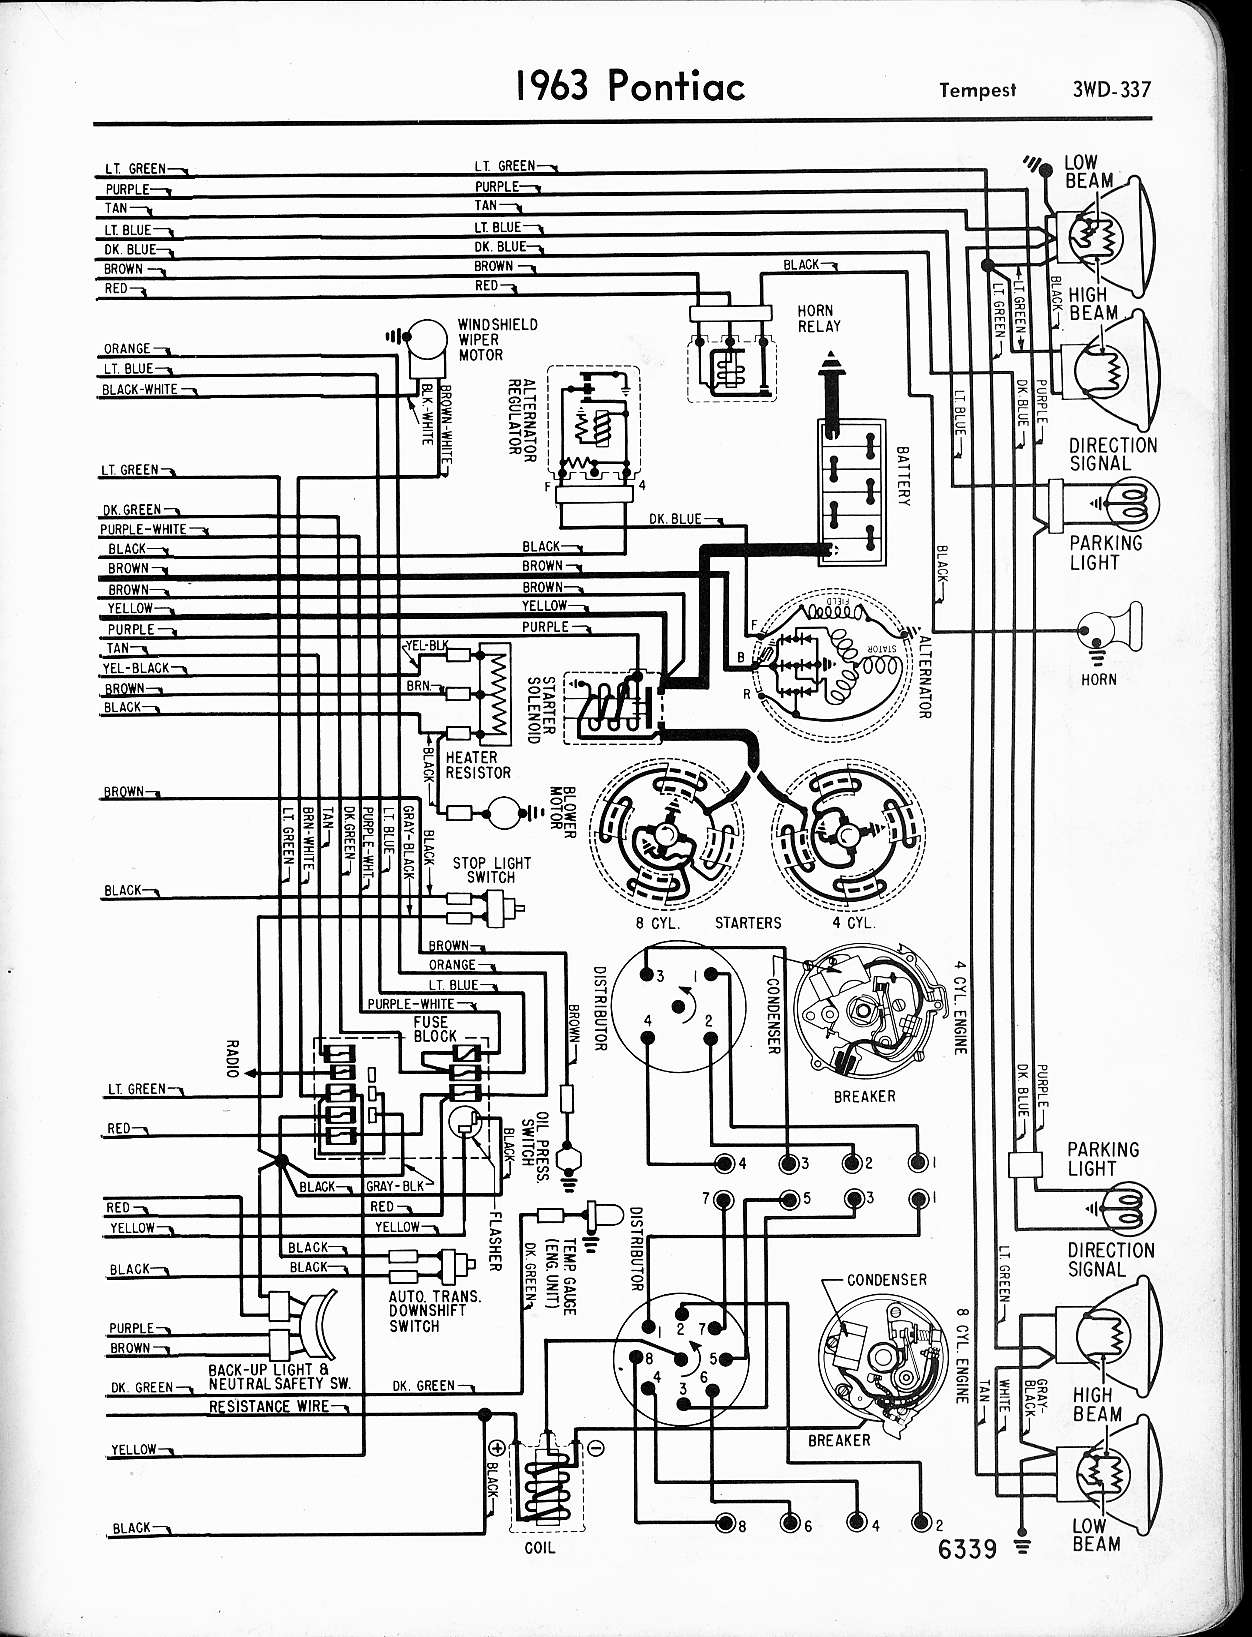 1963 Tempest wiring, right page